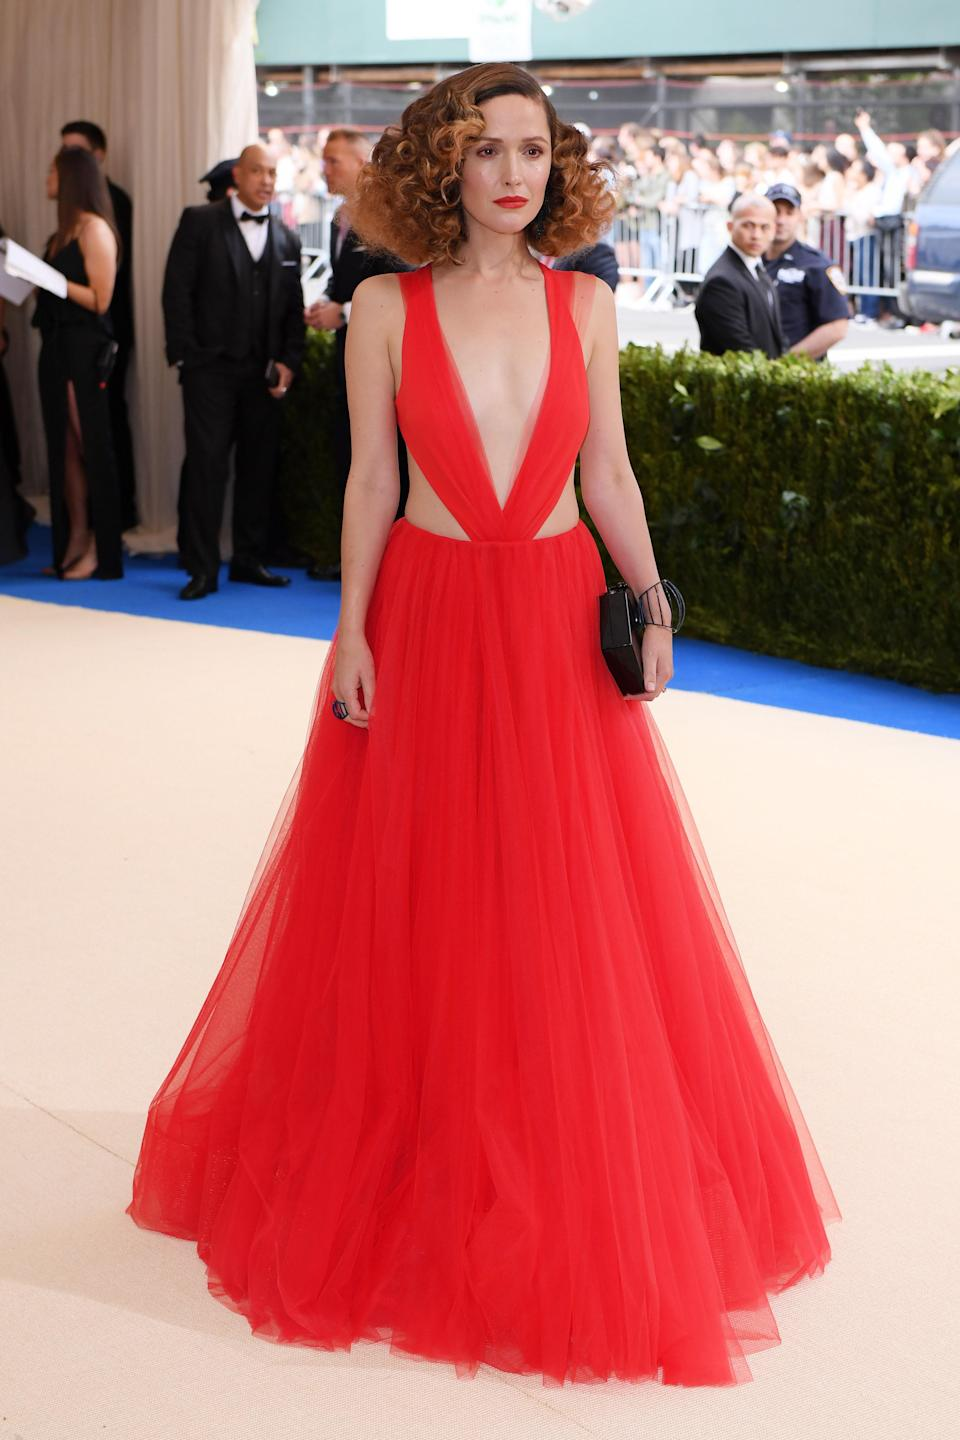 """<h1 class=""""title"""">Rose Byrne in Ralph Lauren and with Dauphin jewelry</h1> <cite class=""""credit"""">Photo: REX/Shutterstock</cite>"""